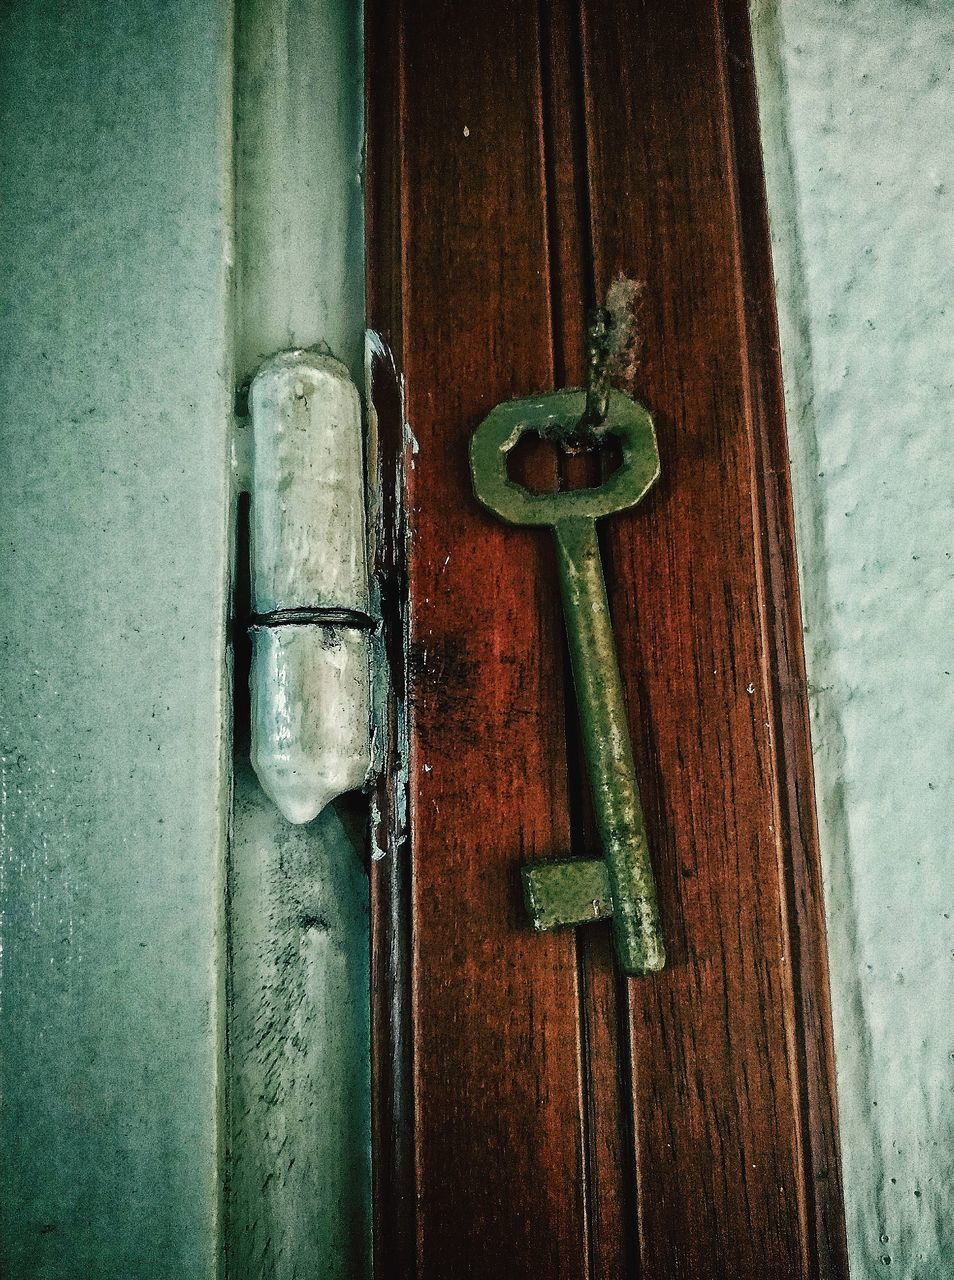 CLOSE-UP OF CLOSED DOOR ON WOODEN WALL